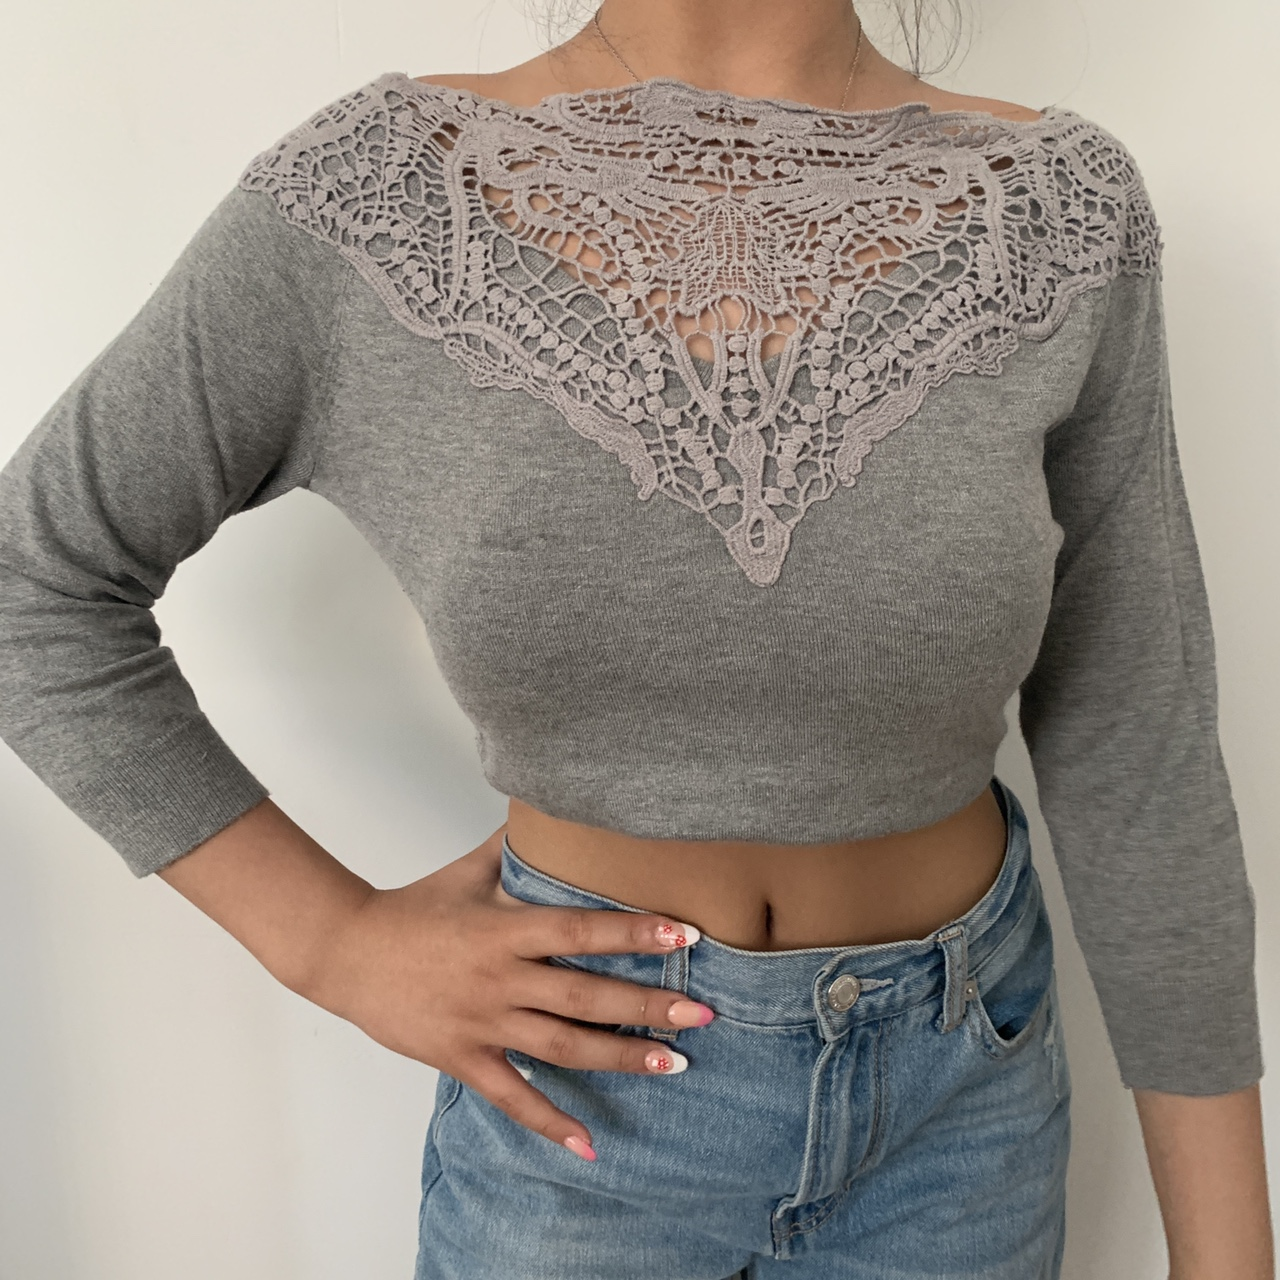 Product Image 1 - FOREVER 21 GREY SHIRT WITH